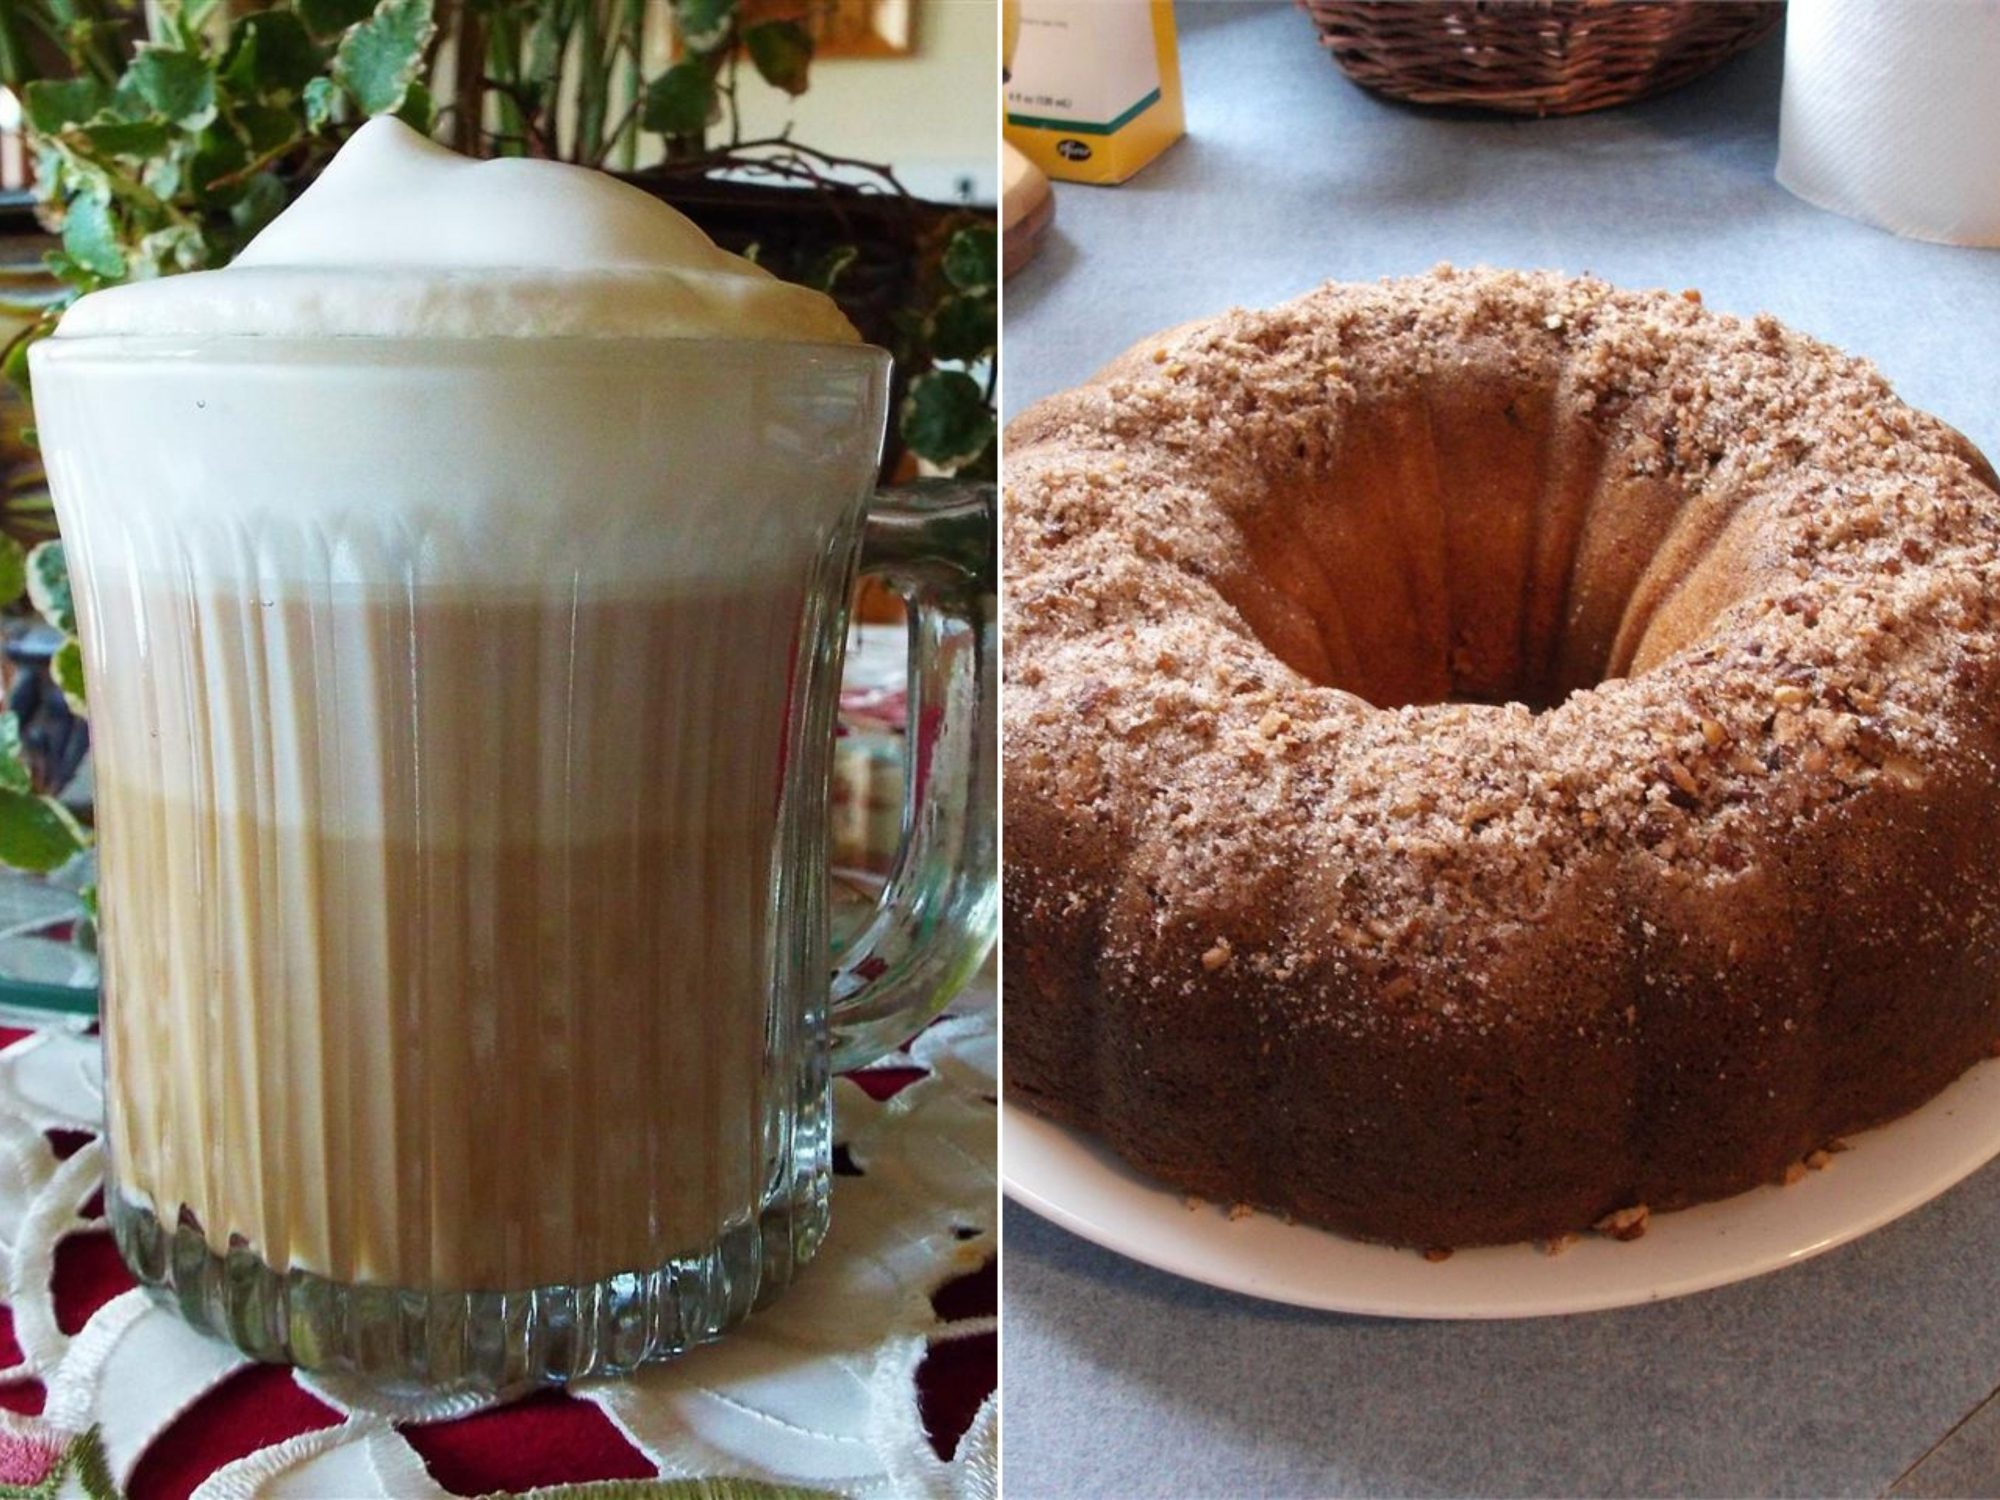 an image pairing a cappuccino and coffee cake